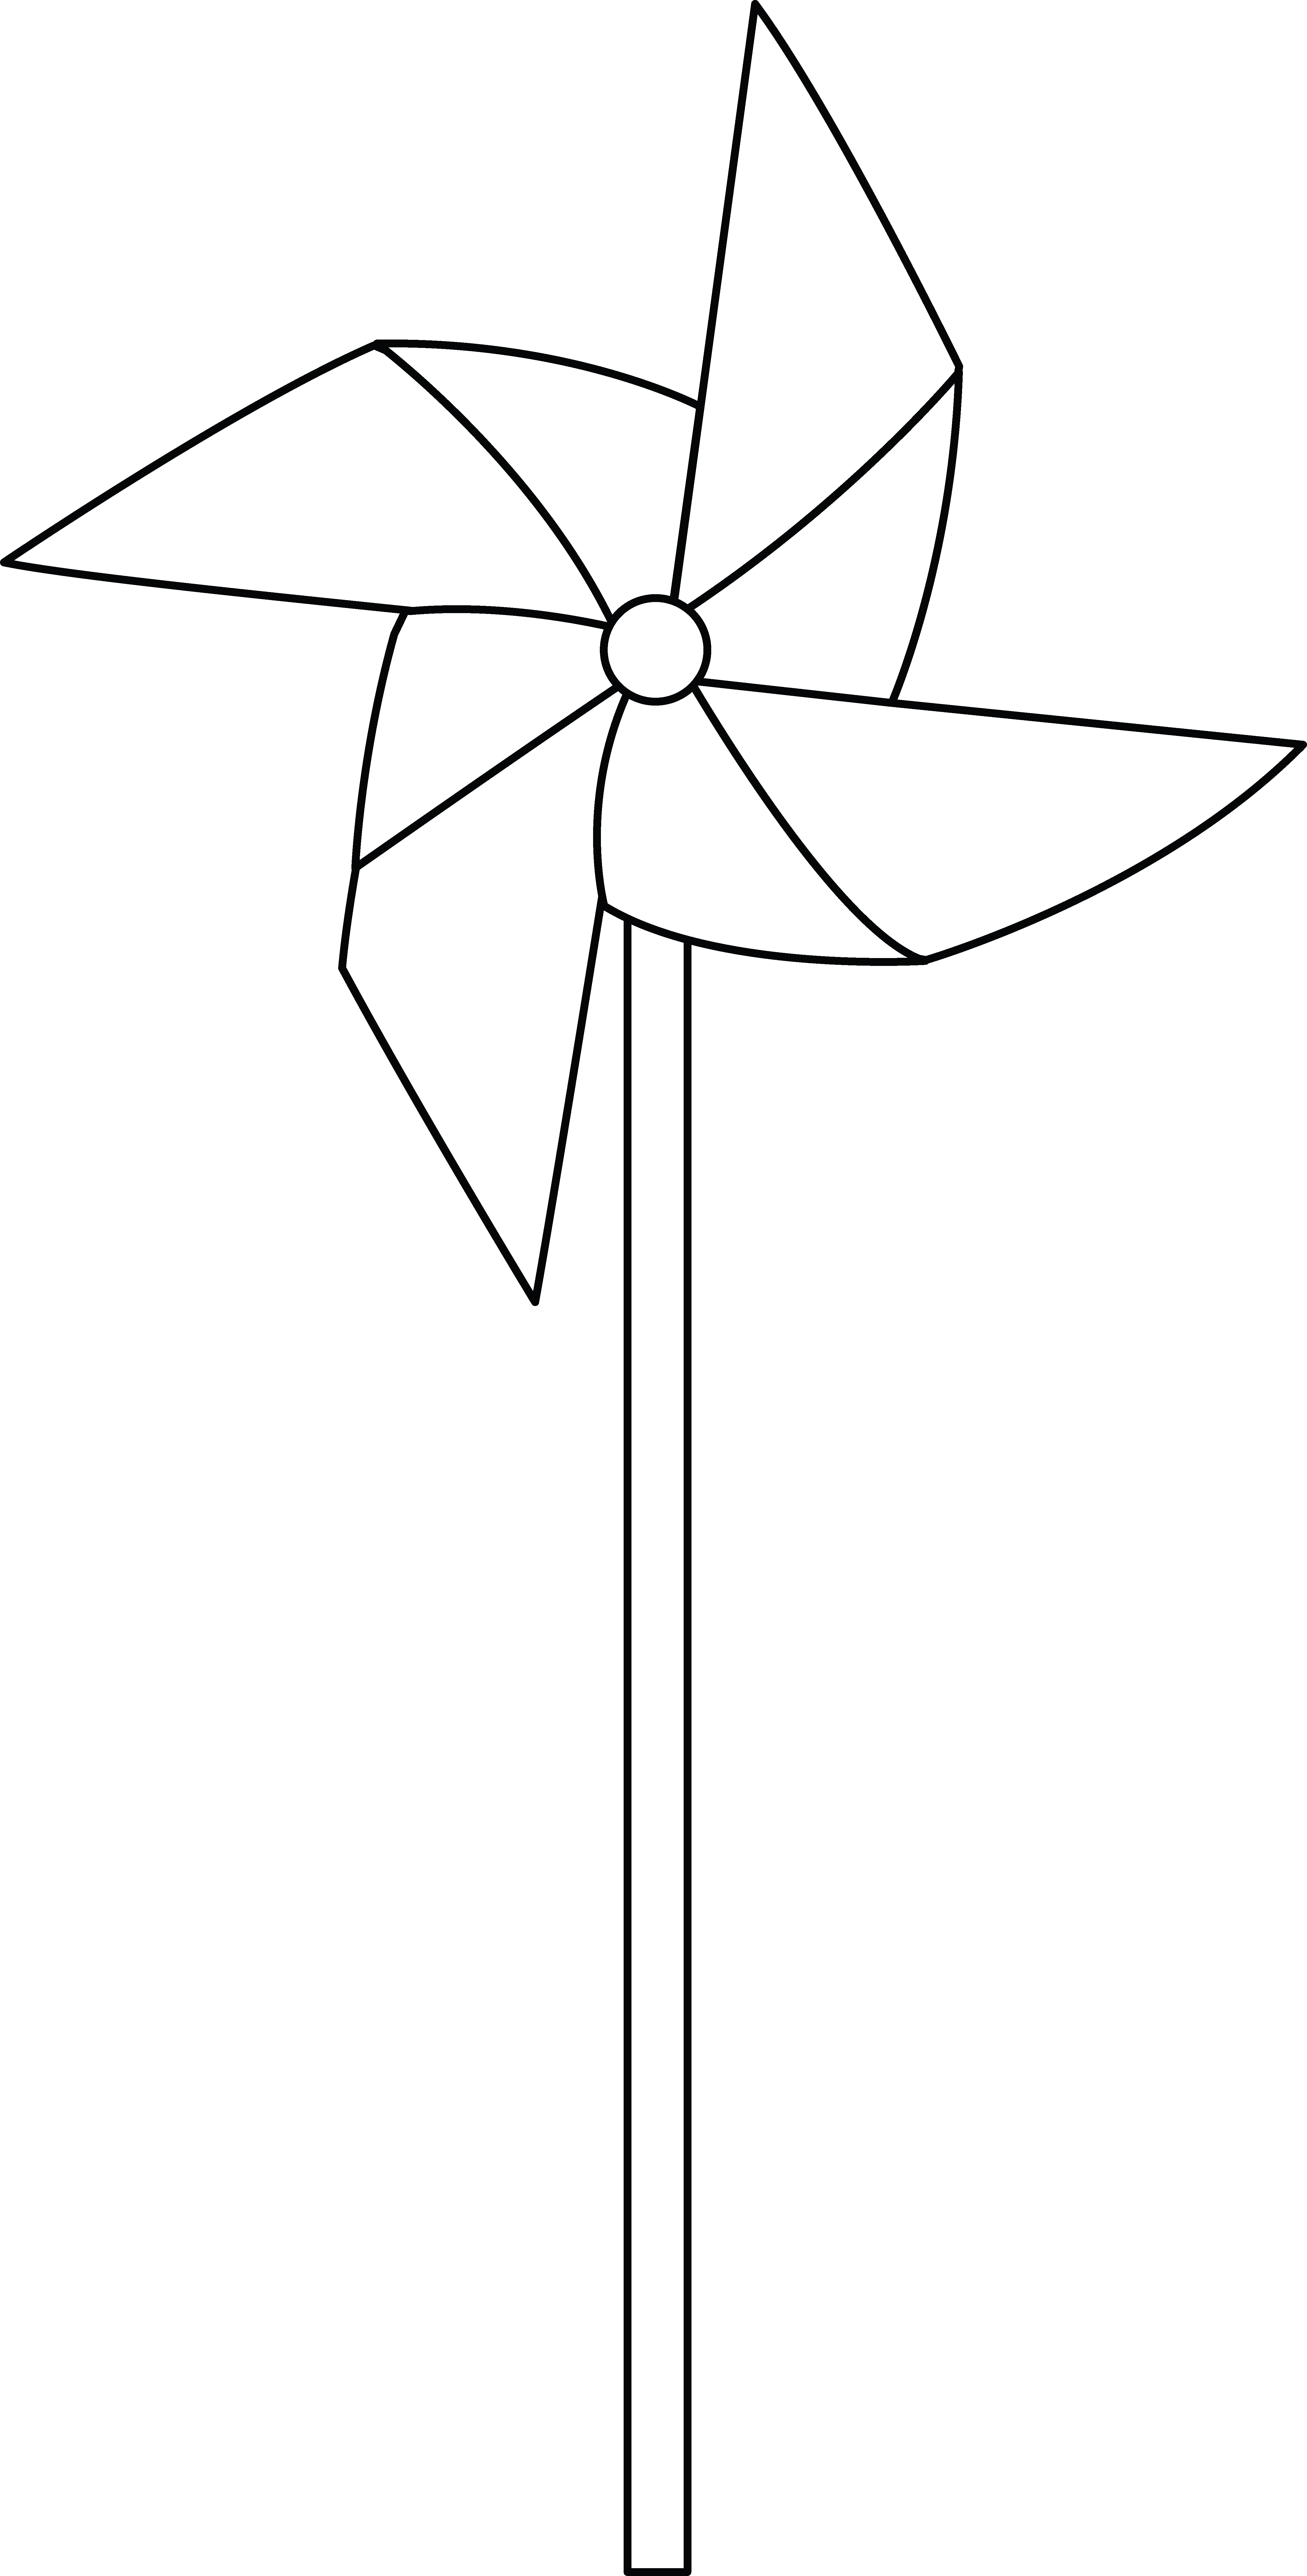 Pinwheel drawing black and white. Colorable free clip art